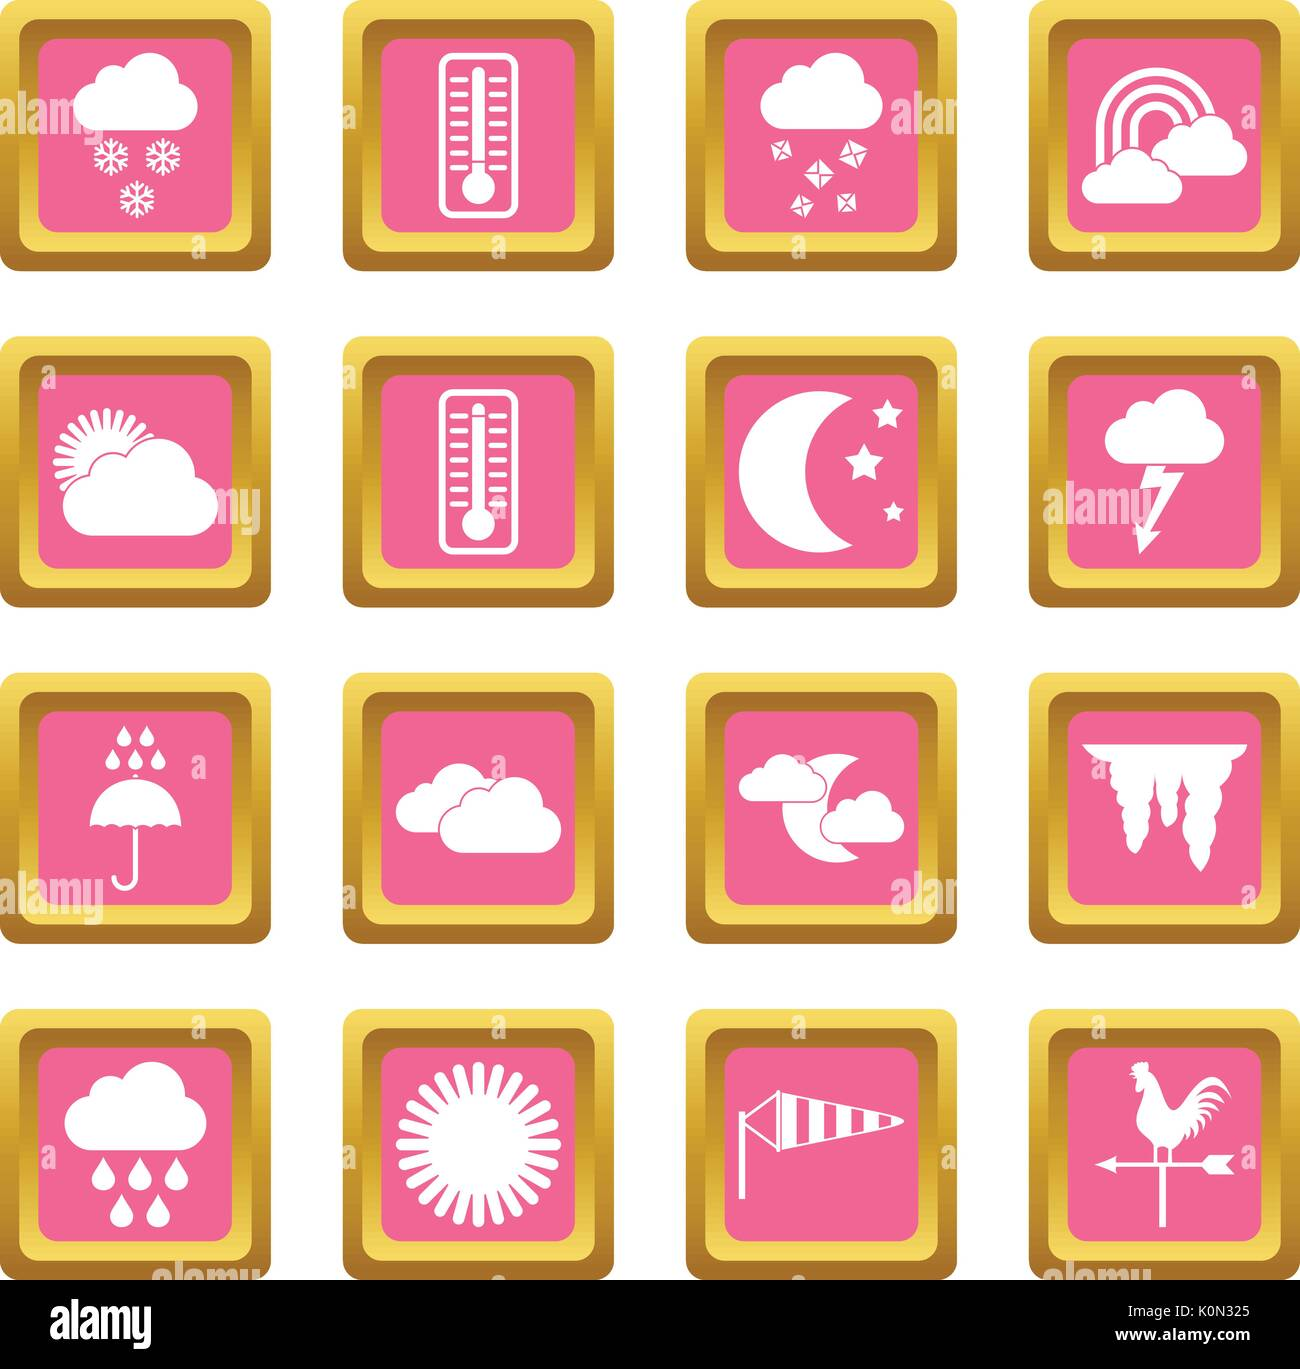 Weather icons pink - Stock Vector